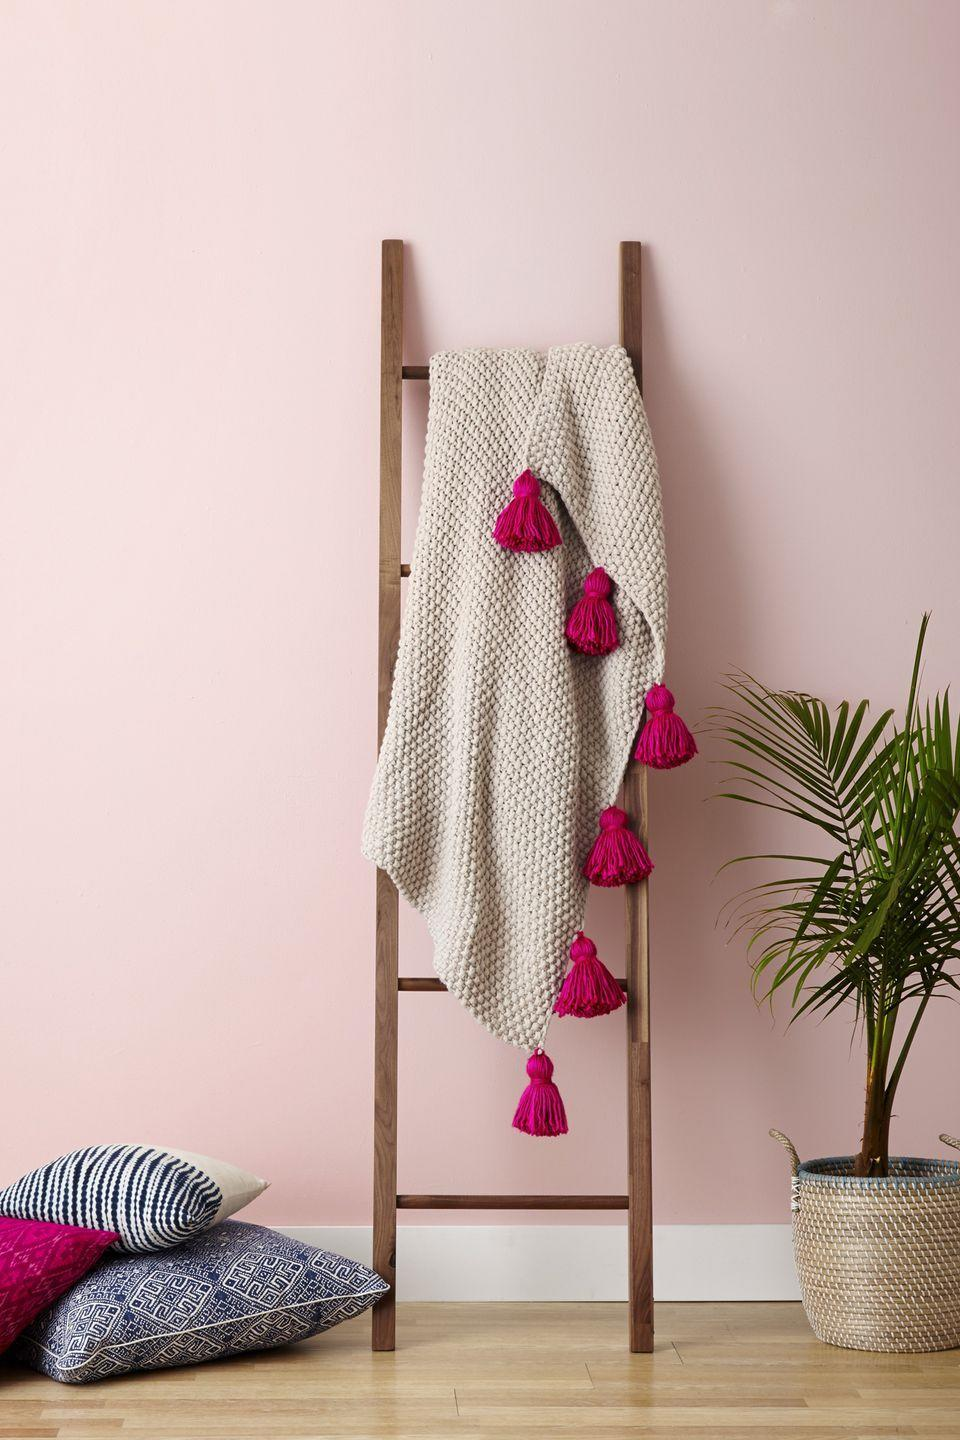 "<p>Because your living room isn't complete unless it has at least three fuzzy throws. Before putting this wooden ladder on display, dress up a plain blanket by creating extra-large tassels and pom-poms from thick yarn and knotting them onto the end. </p><p><a class=""link rapid-noclick-resp"" href=""https://www.amazon.com/Hallops-Blanket-Premium-Decorative-Blankets/dp/B07VP2X9KR/?tag=syn-yahoo-20&ascsubtag=%5Bartid%7C10063.g.34845752%5Bsrc%7Cyahoo-us"" rel=""nofollow noopener"" target=""_blank"" data-ylk=""slk:SHOP BLANKET LADDERS"">SHOP BLANKET LADDERS</a></p>"